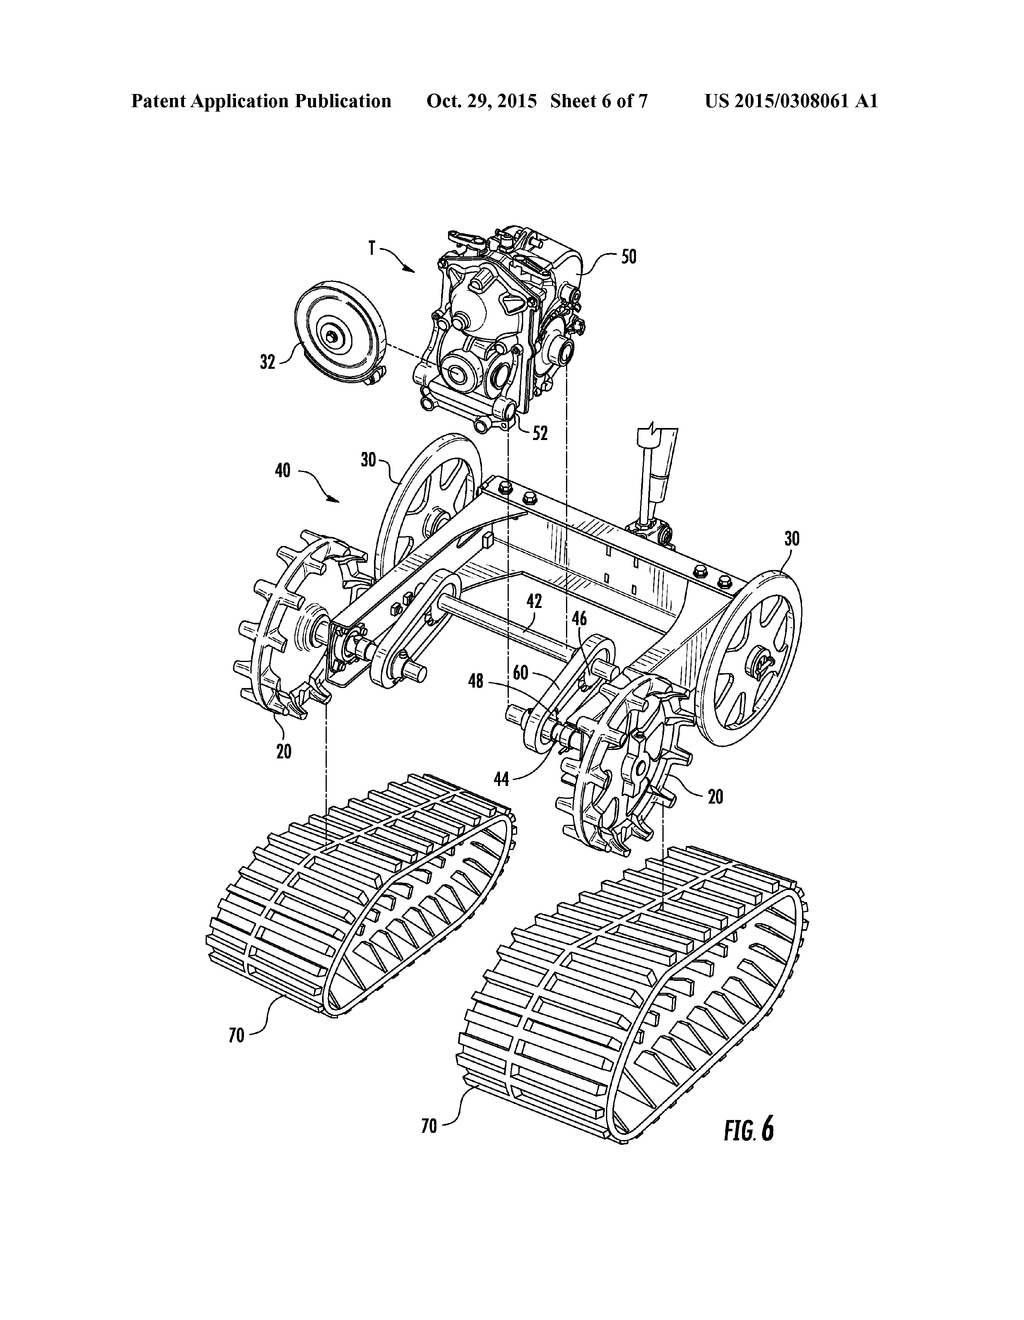 hight resolution of drive shaft bearing structure assemblies for snowblower track type driven sprocket and related methods diagram schematic and image 07